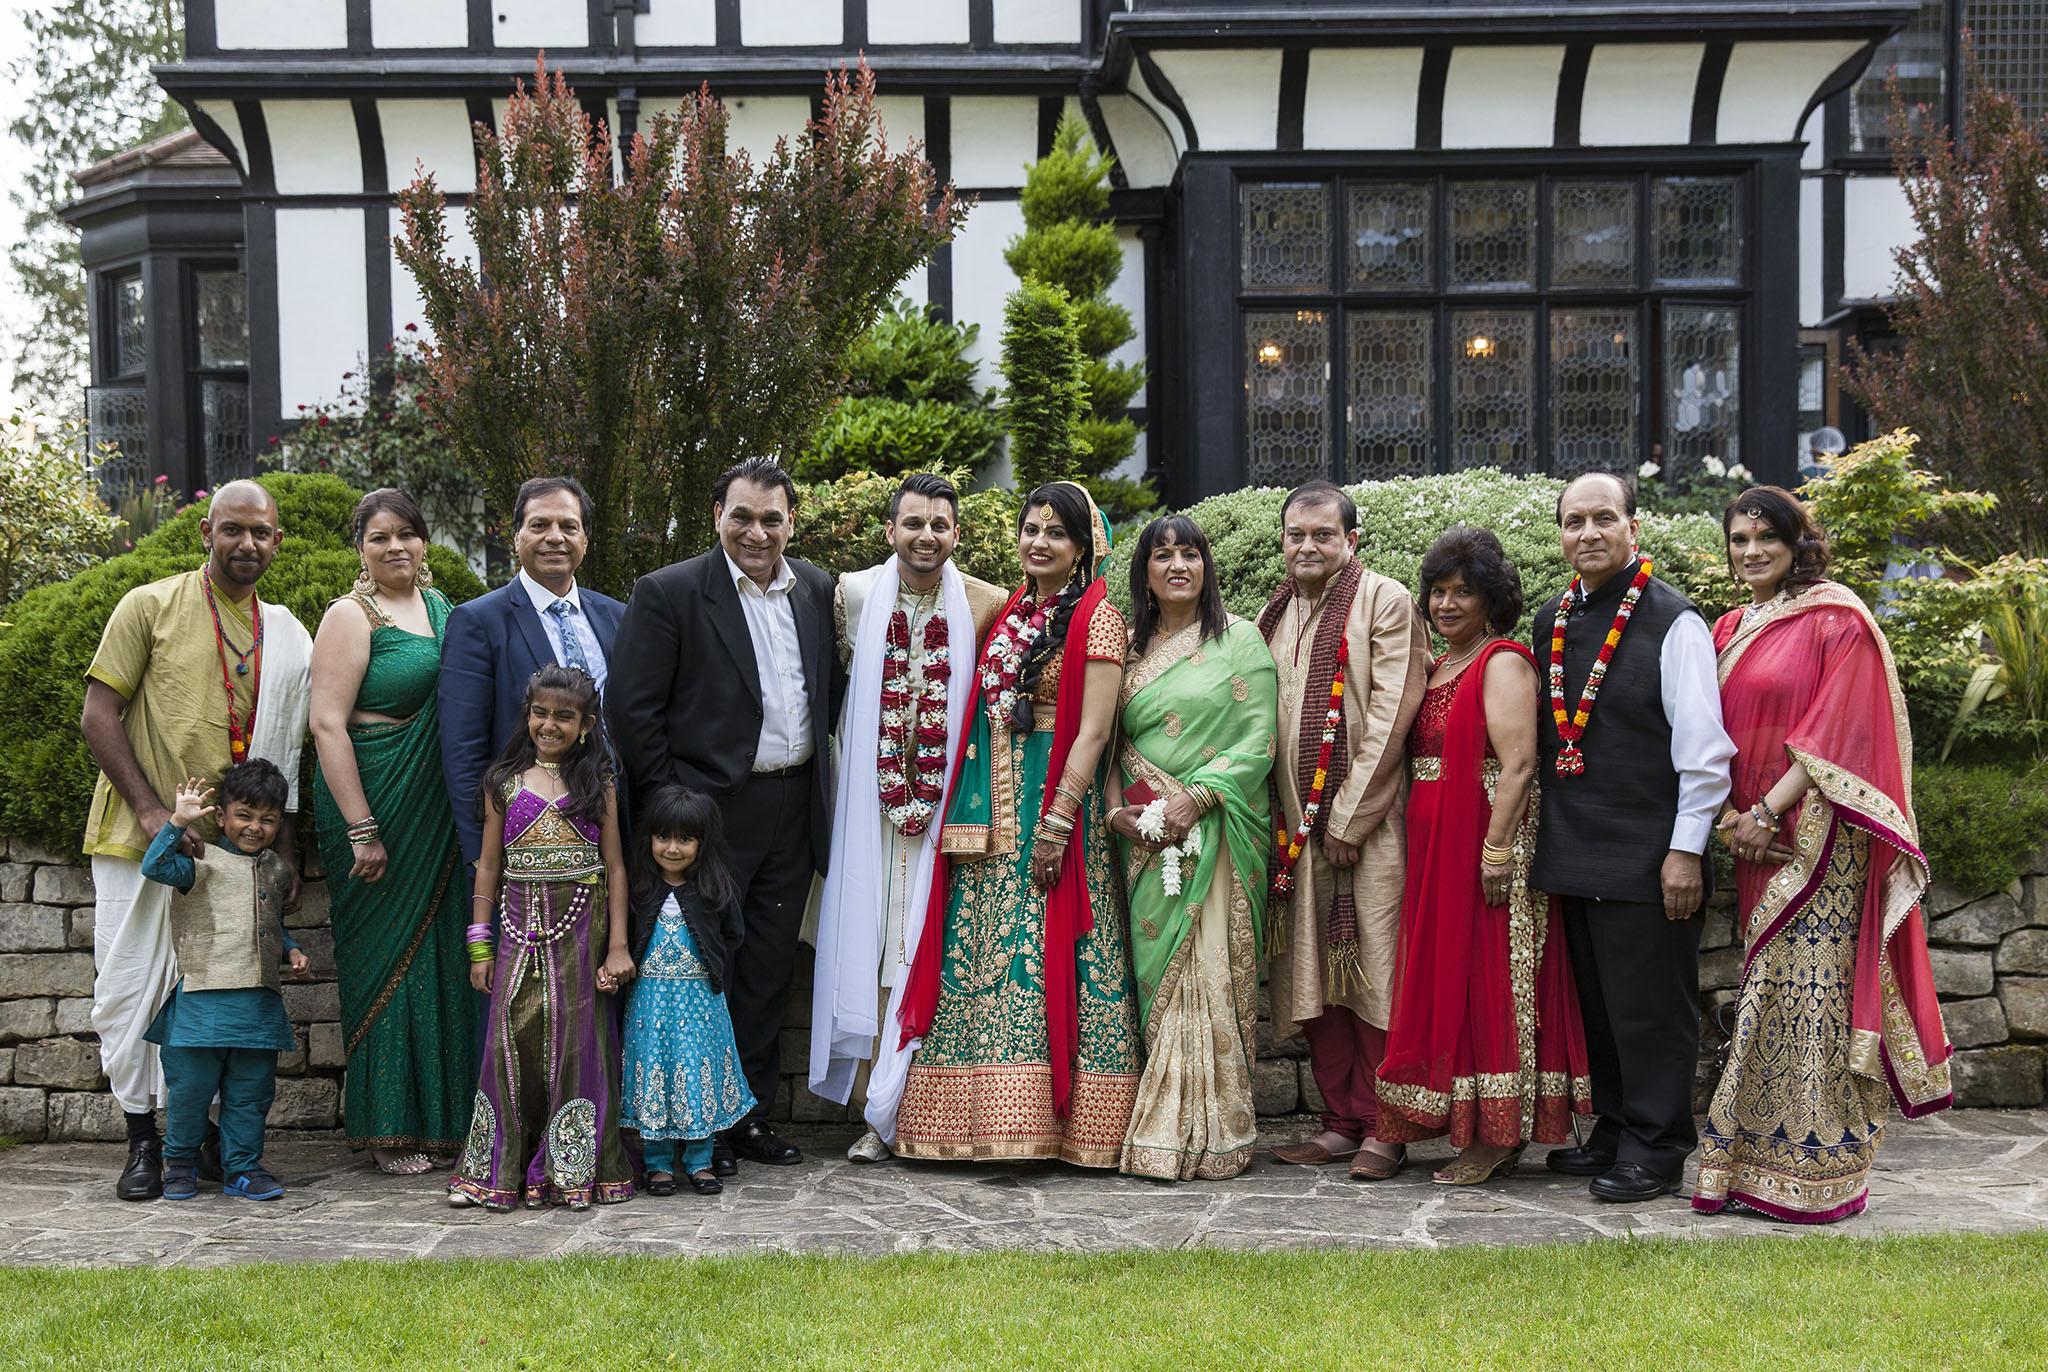 elizabethgphotography_kingslangley_hertfordshire_fineart_indian_wedding_photography_jigna_bhuja_bhaktivedanta_manor_watford_41.jpg